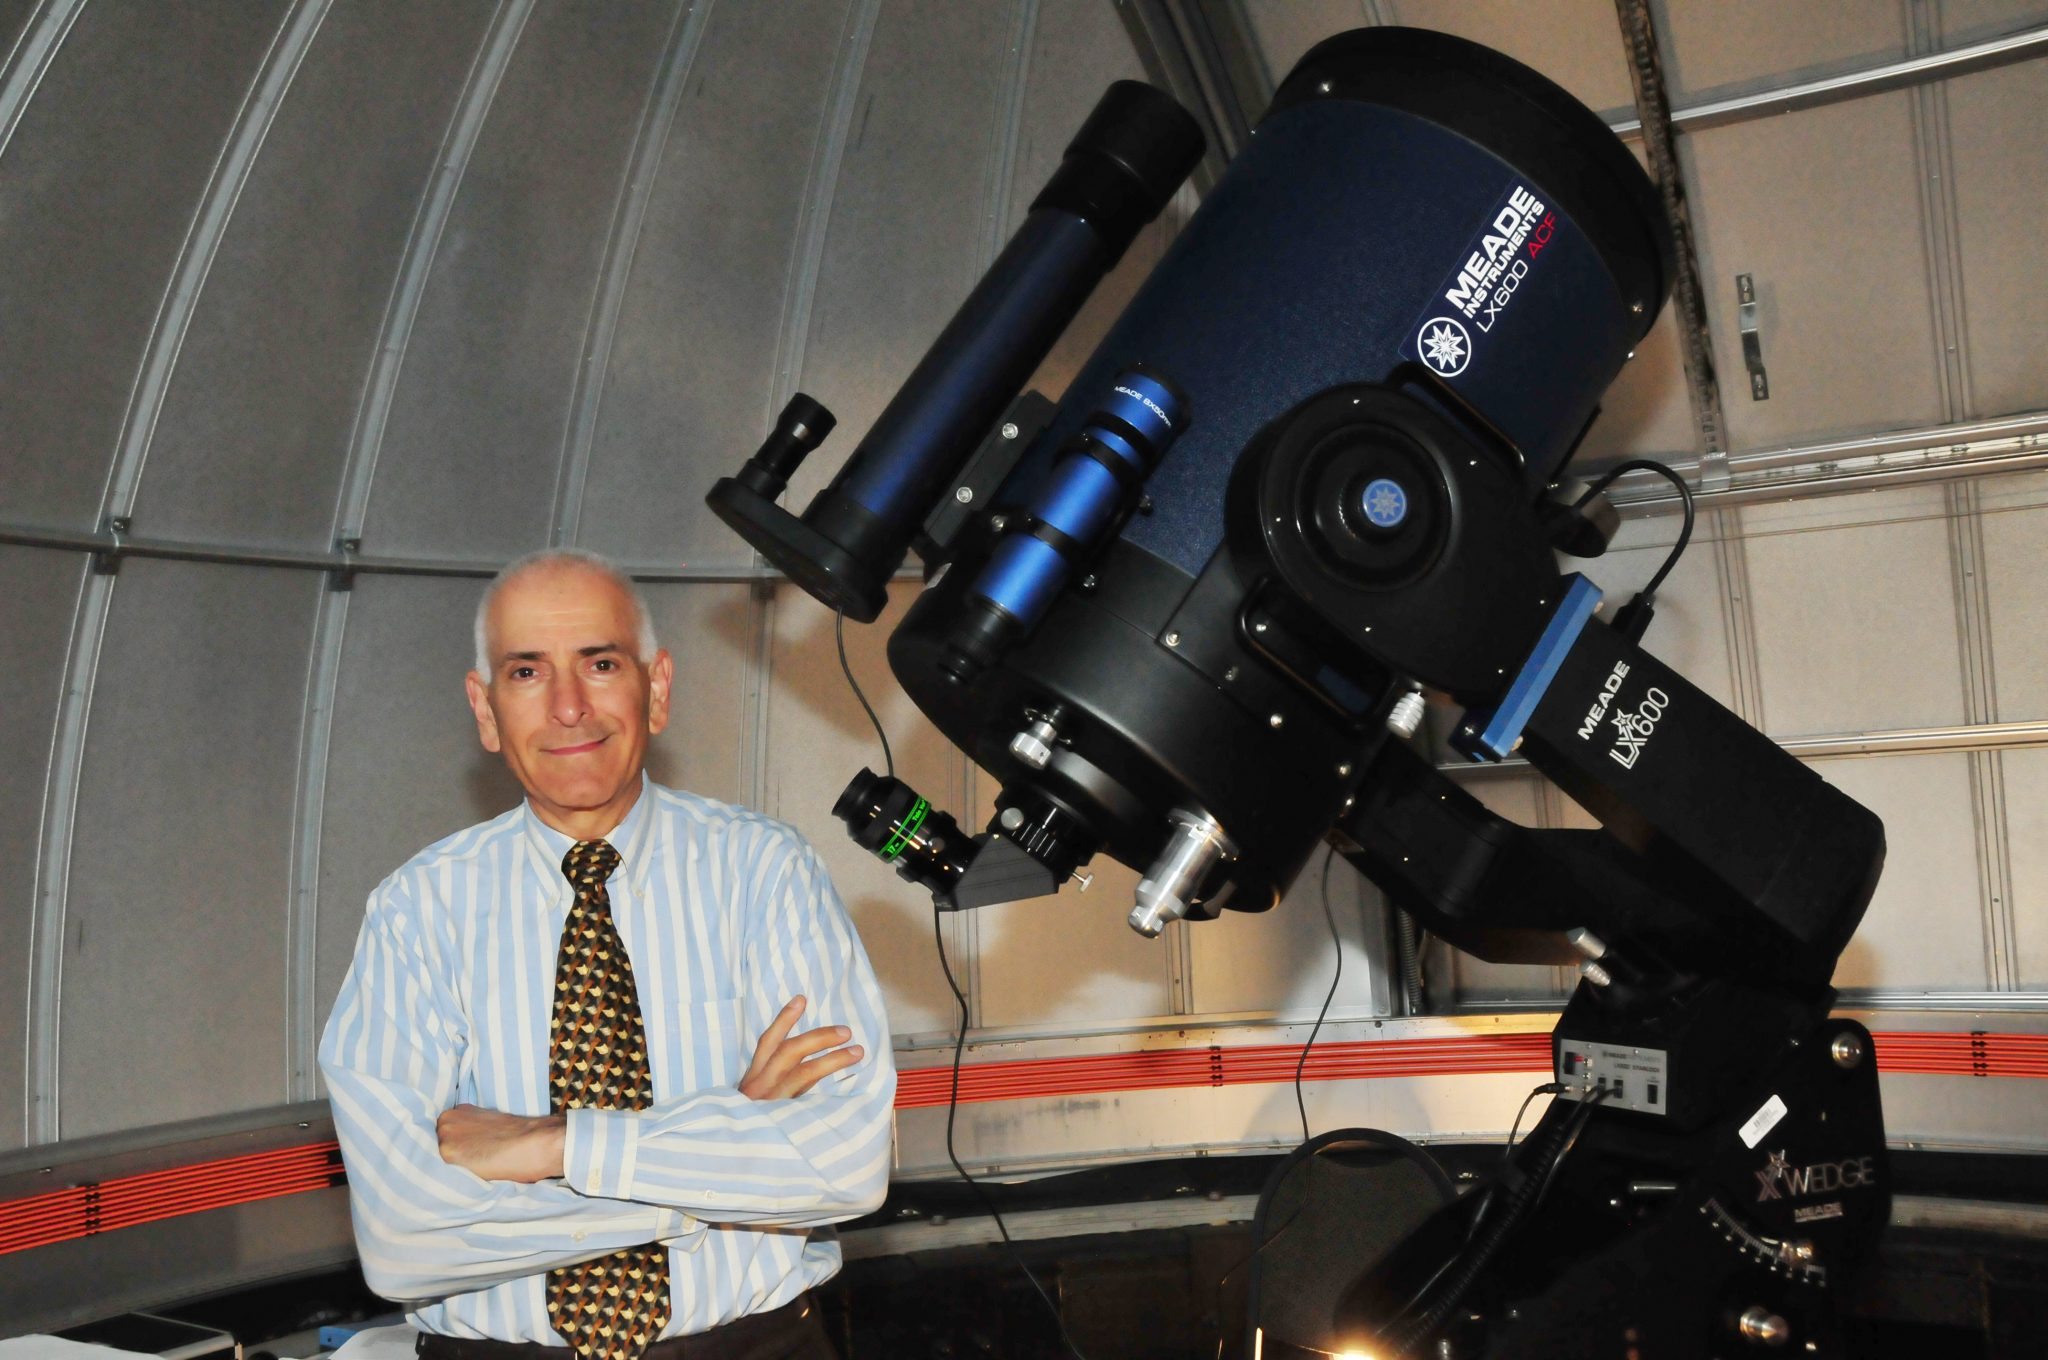 DSU To Hold An Observatory Open House NOV. 11